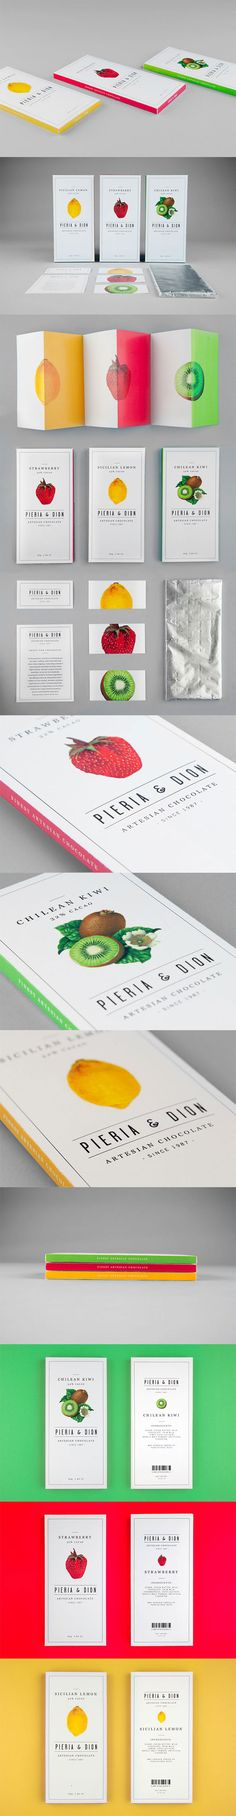 Packaging design for fictional artesian chocolate company Pieria & Dion. An assignment from my Graphic Design class at the School of Visual Arts. Graphic Design and Art Direction: Leo Porto. Photography: Fernando Gomes